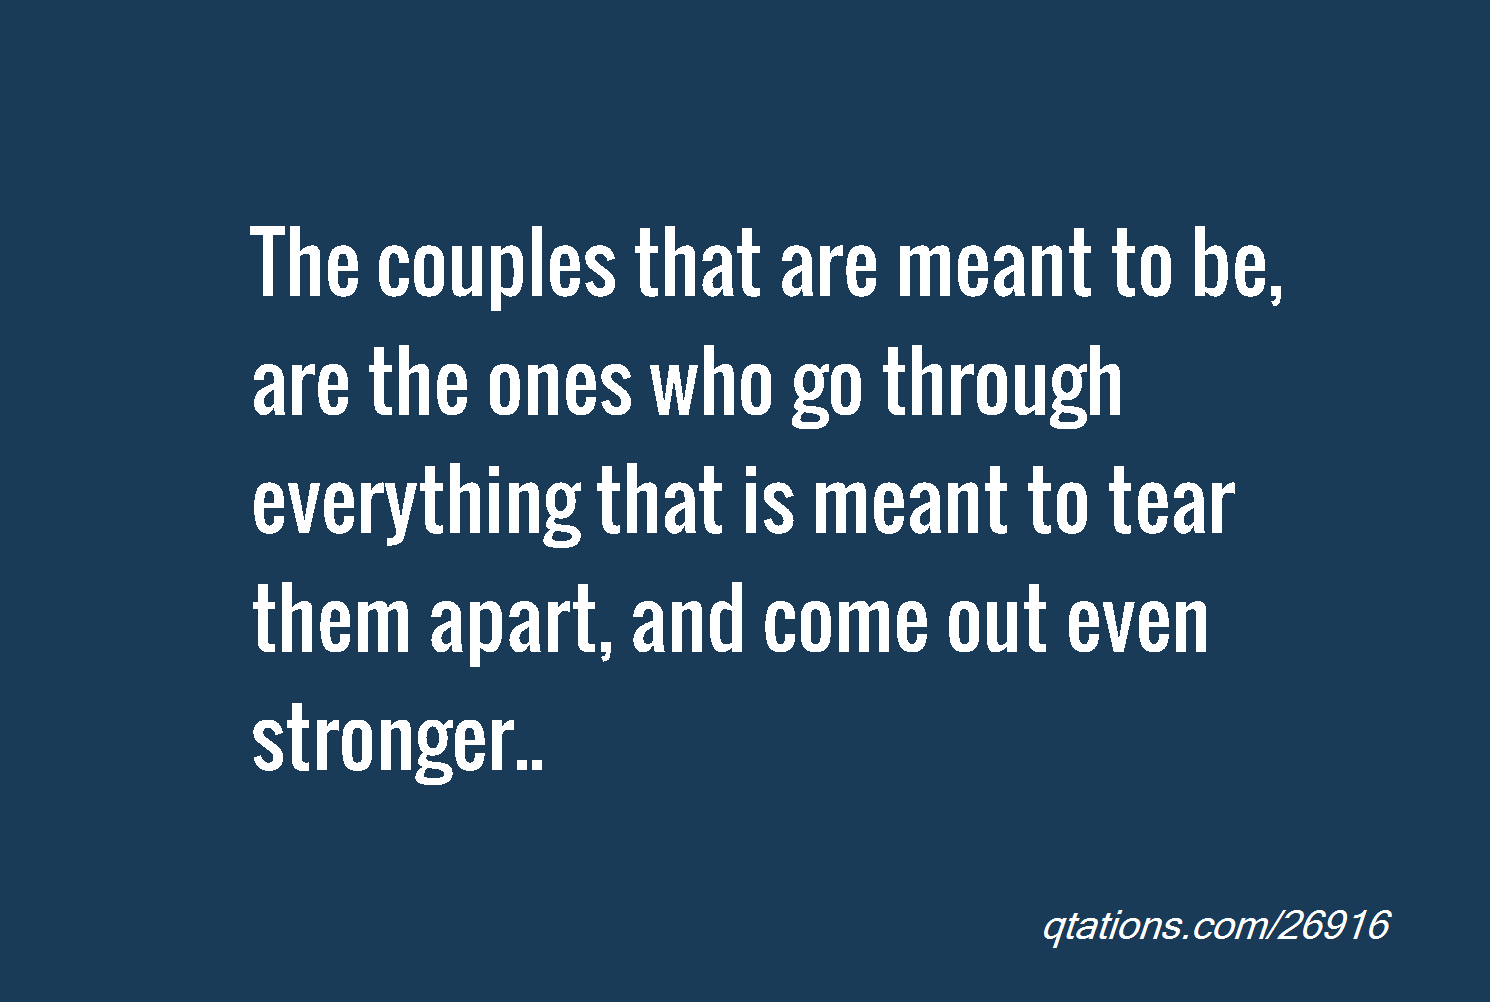 The Couples That Are Meant To Be Quotes. QuotesGram